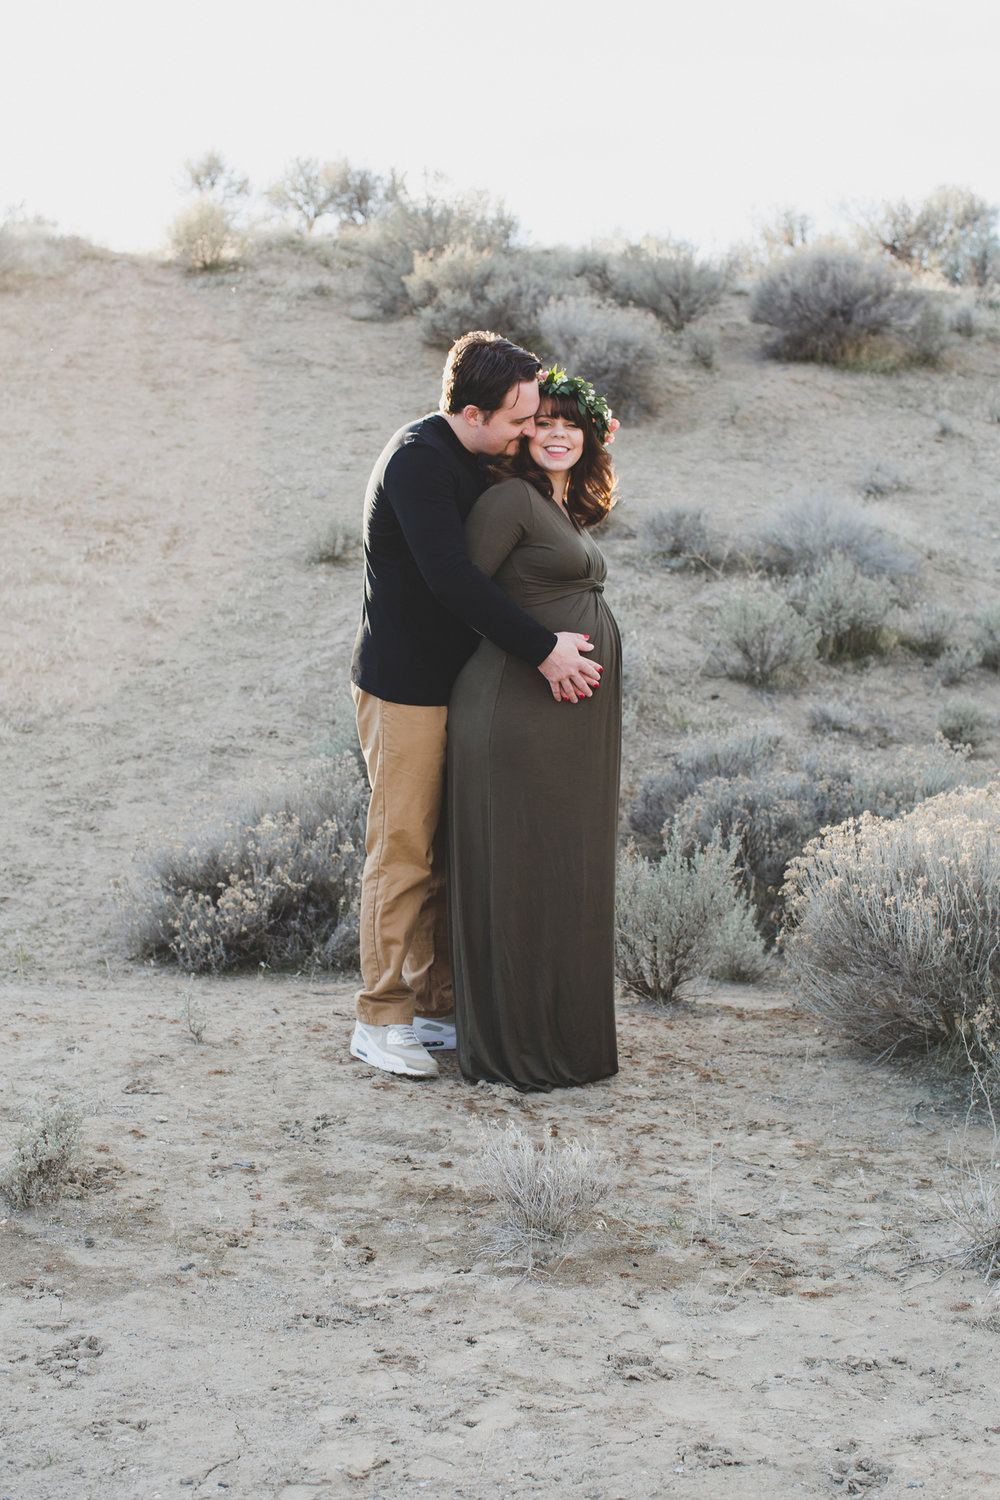 Tri Cities Maternity photographer_tri cities maternity_richland photographer_kennewick photographer_maternity session_red mountain_mama to be_parents to be_tri cities family session_red mountain trails_sage brush_horse_desert session_sunset session_4